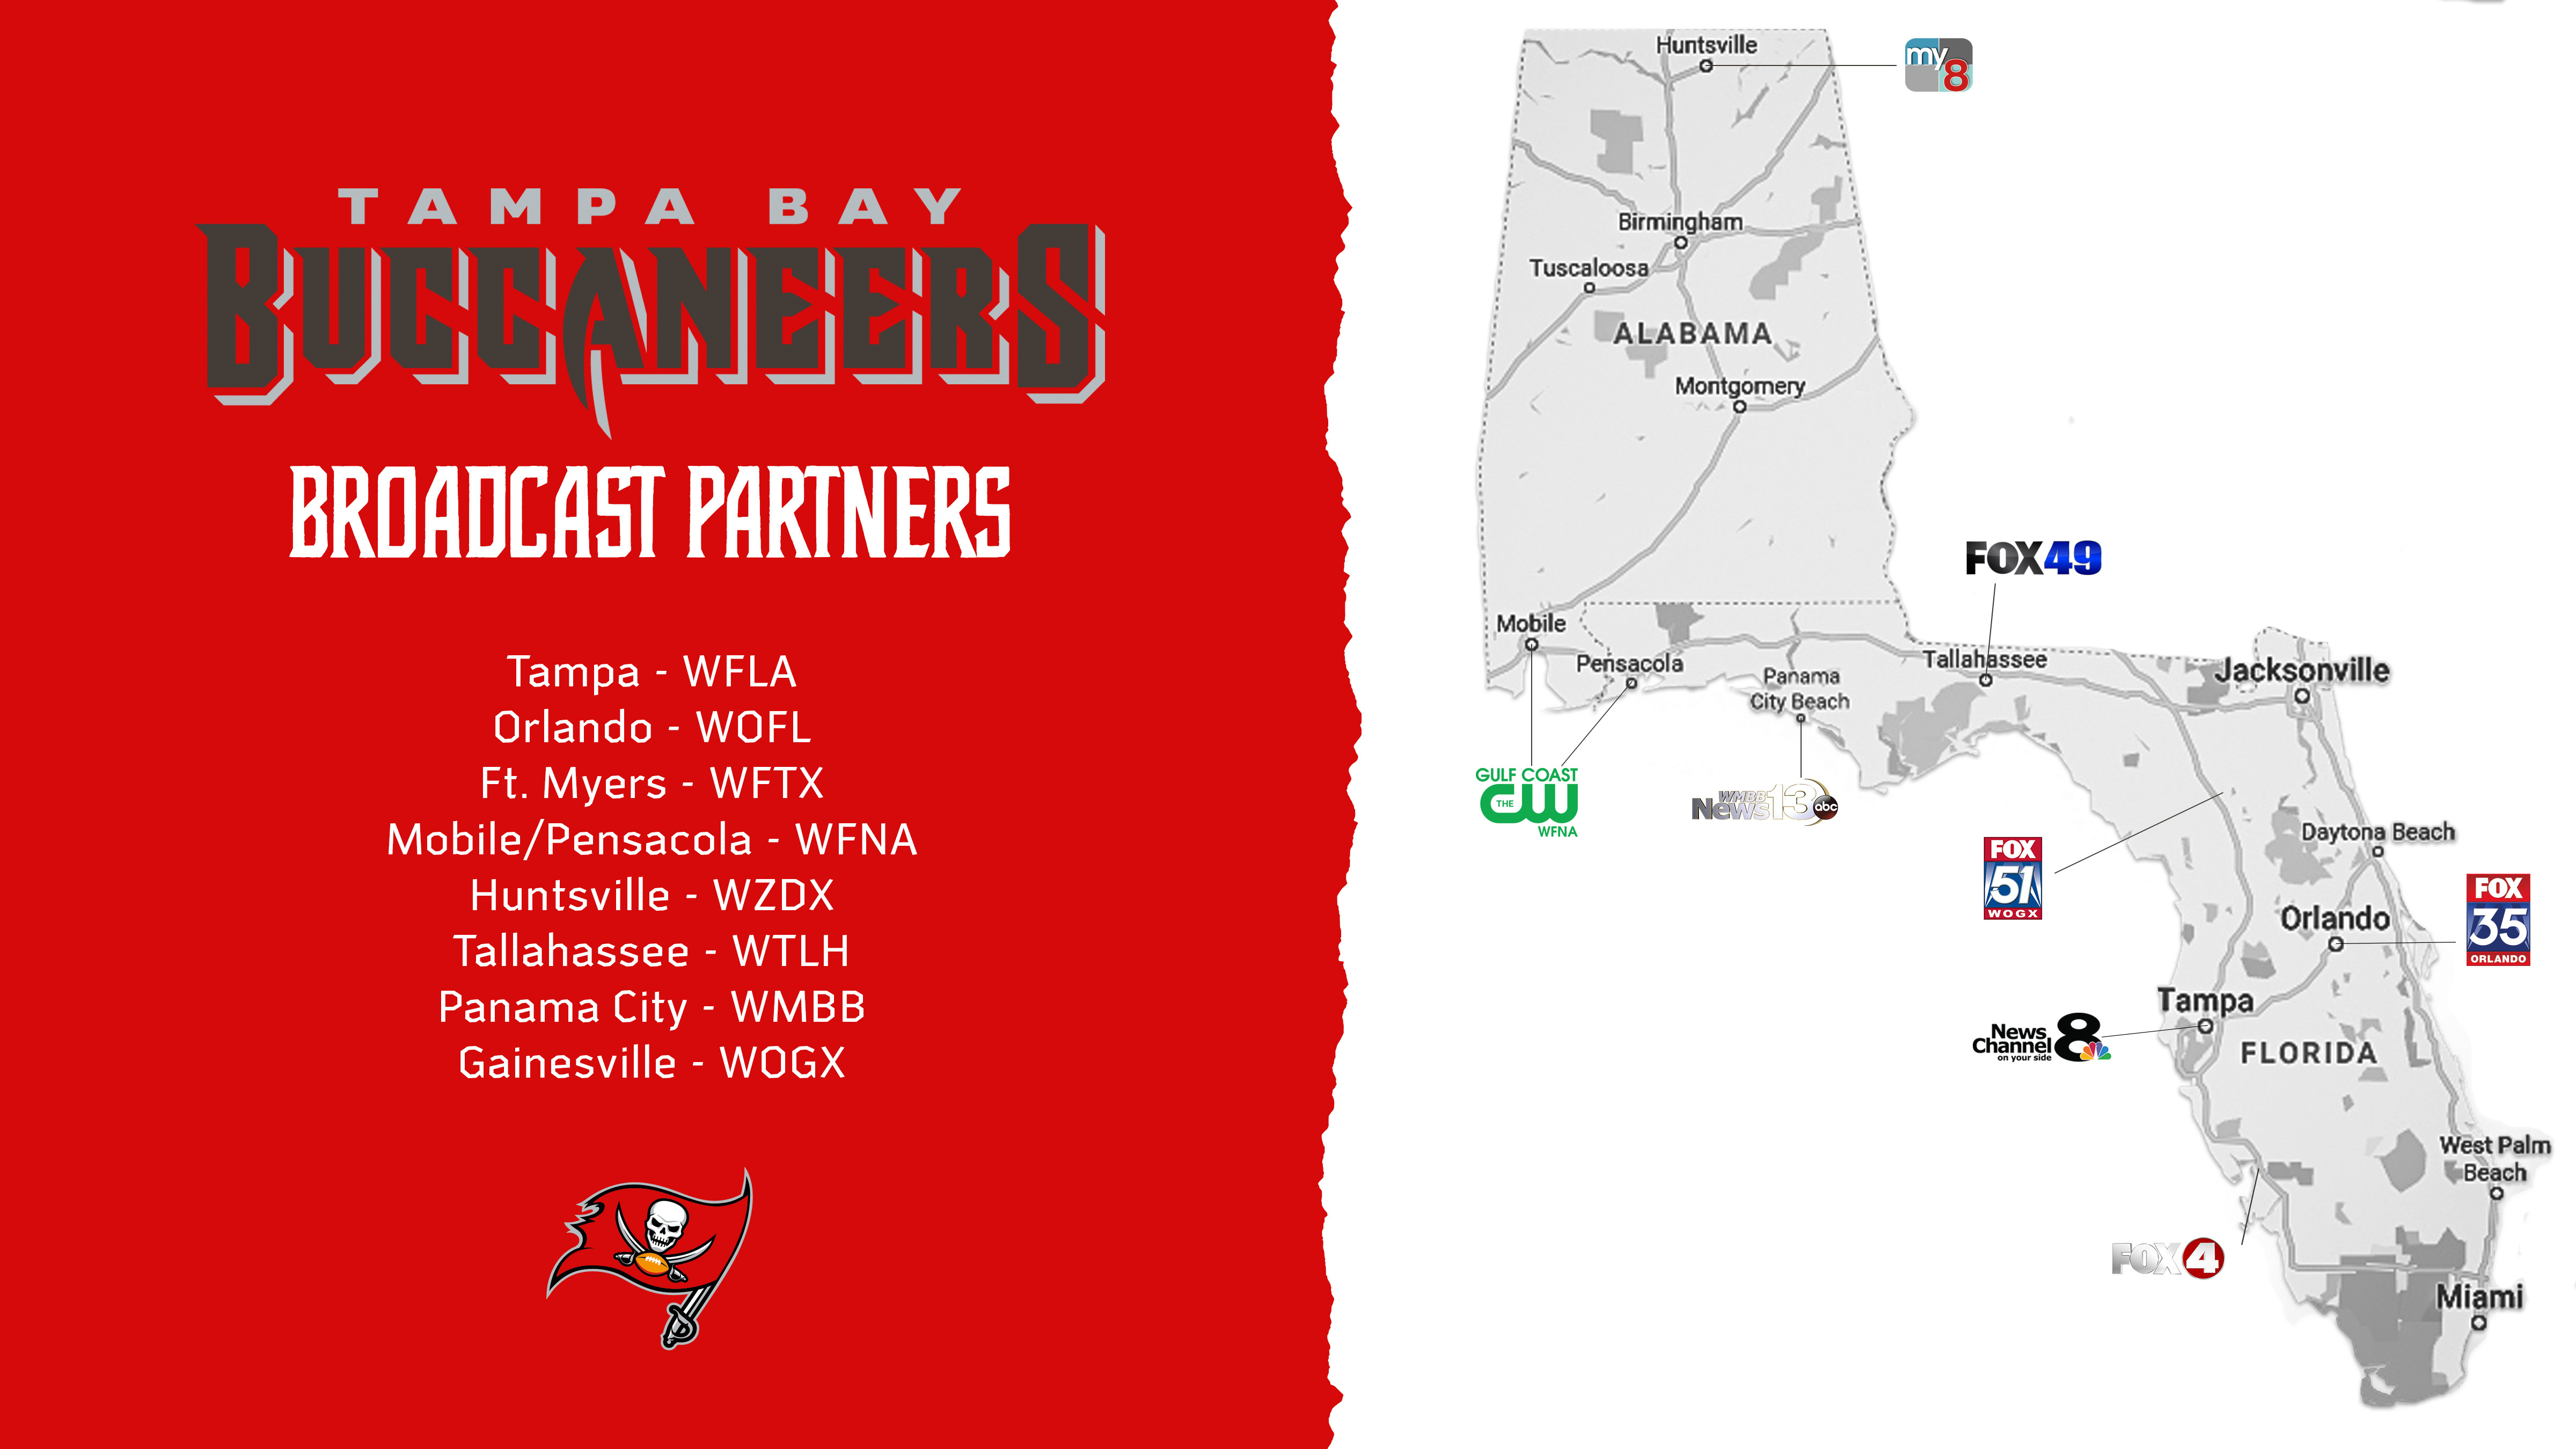 Bucs fans can watch preseason games and more from official broadcast partner WFLA and other local affiliates.